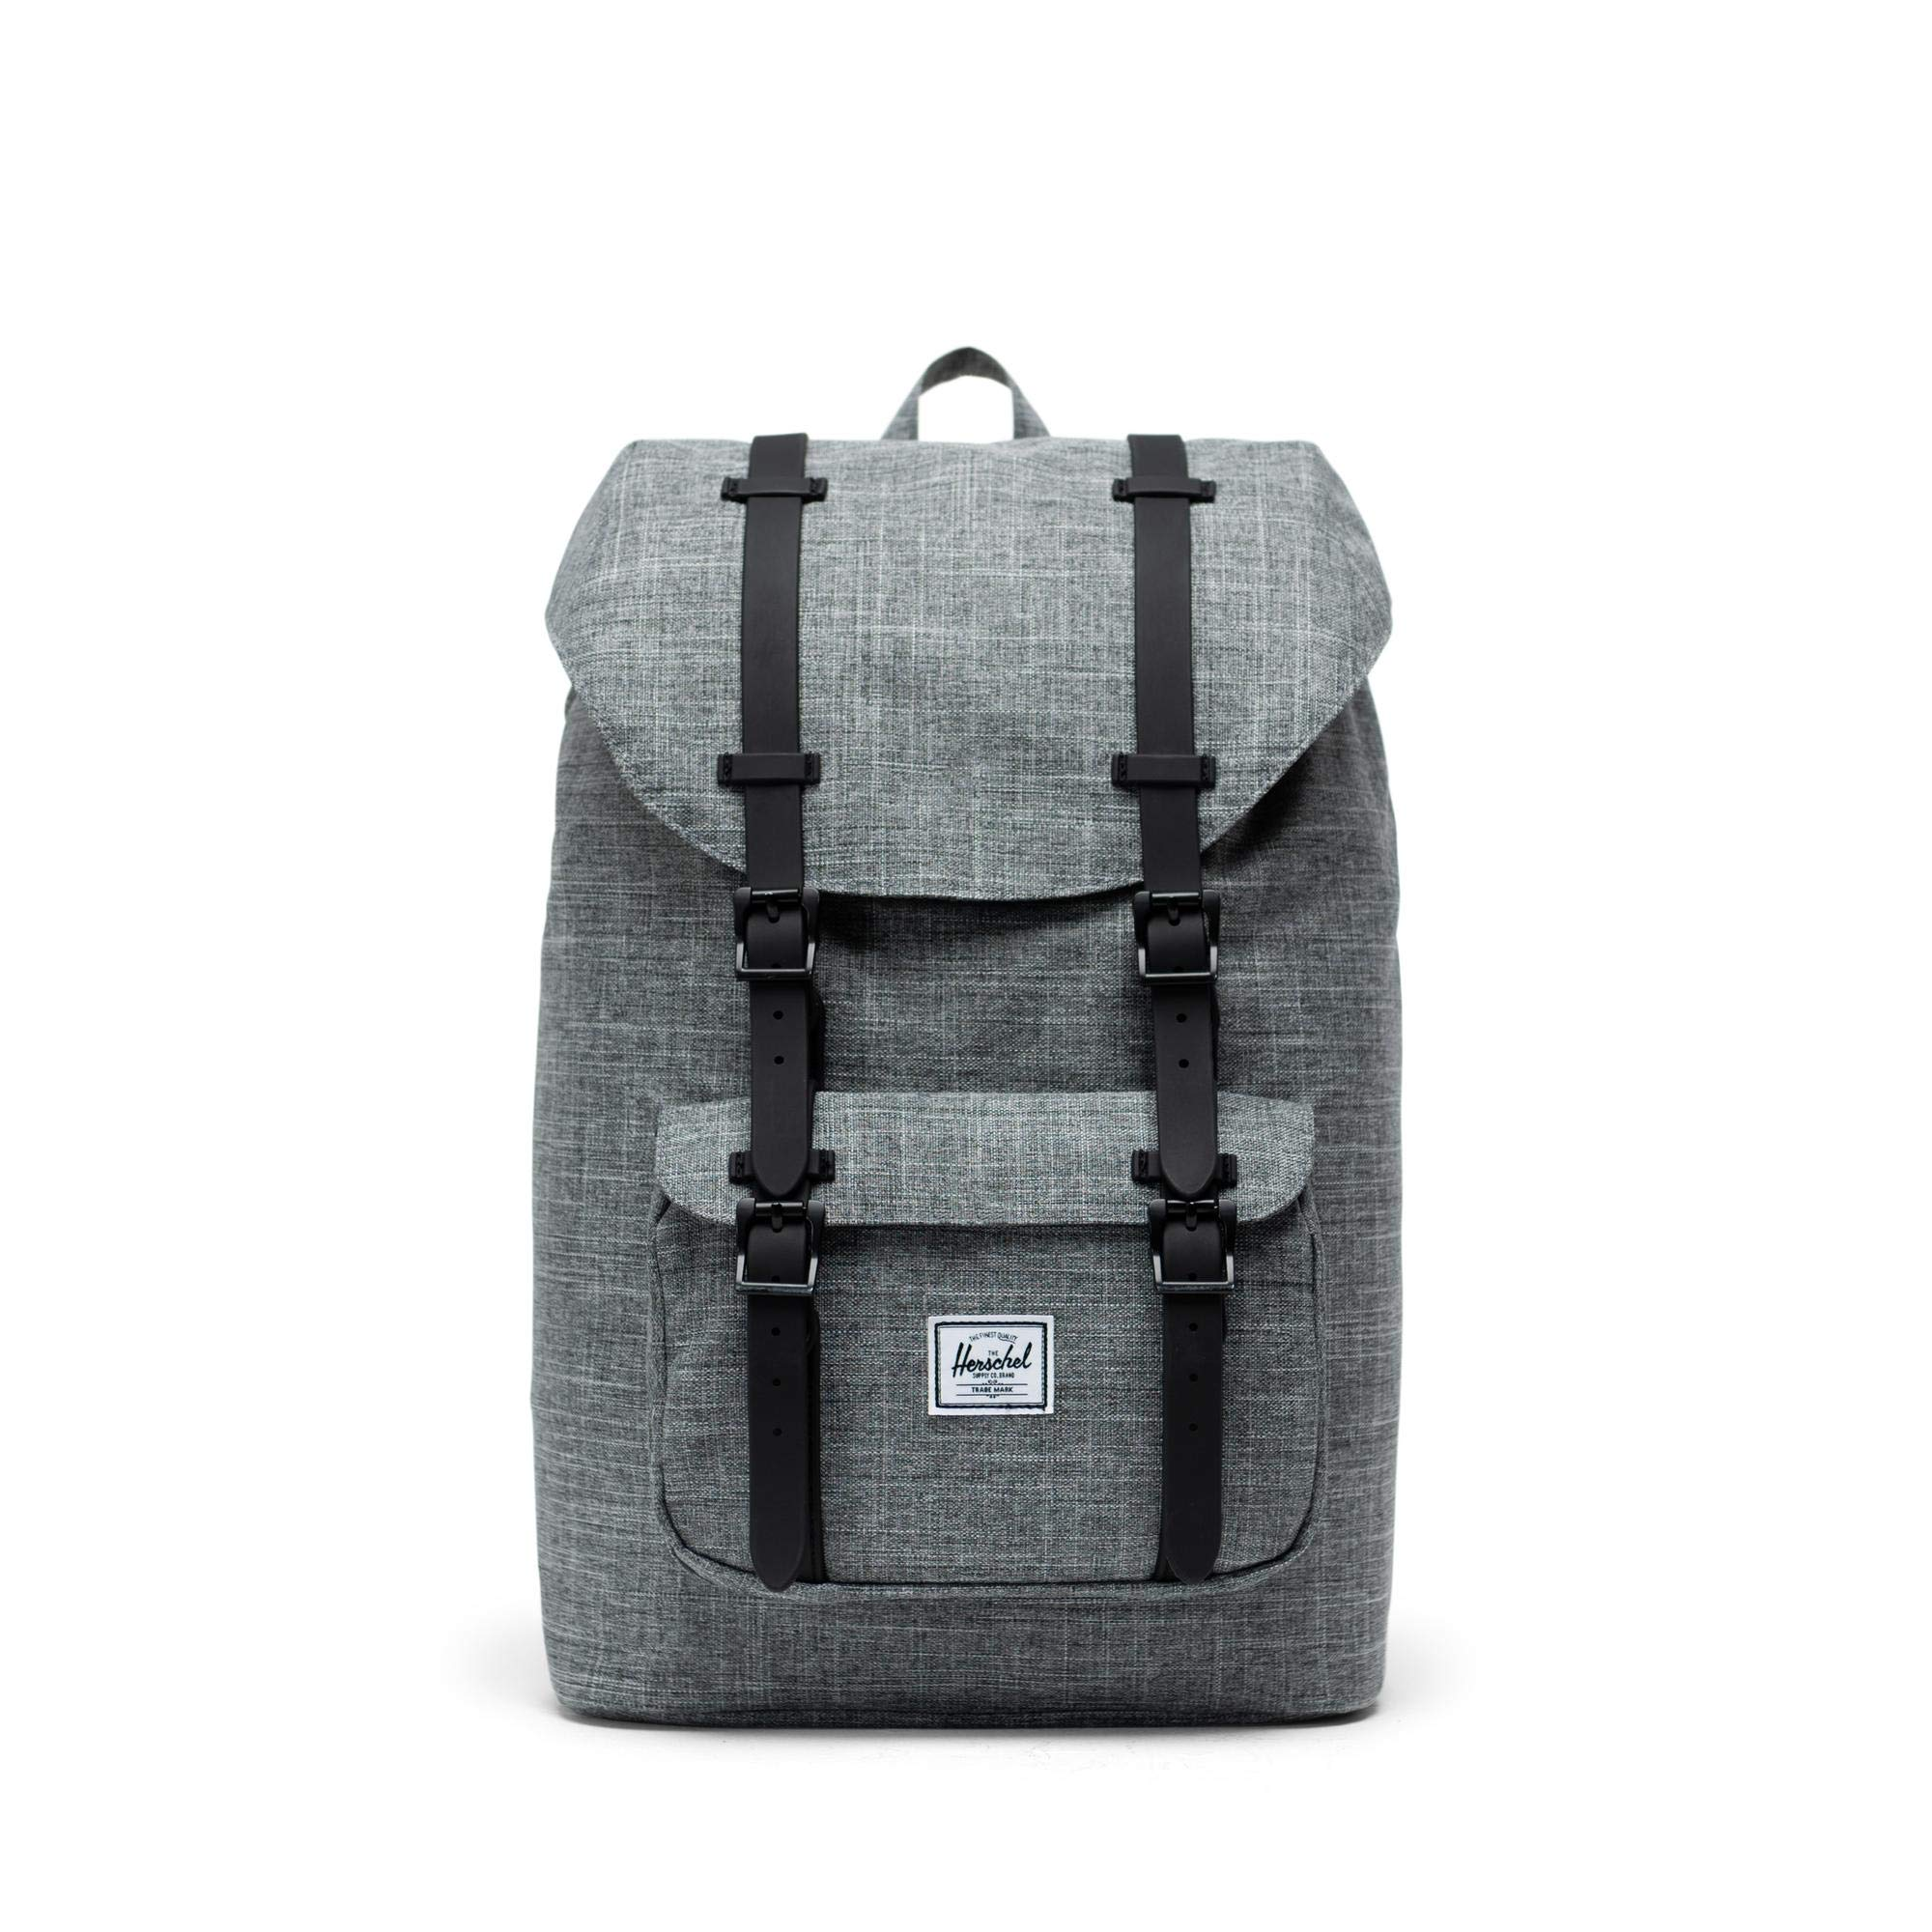 Herschel Little America Backpack with Laptop